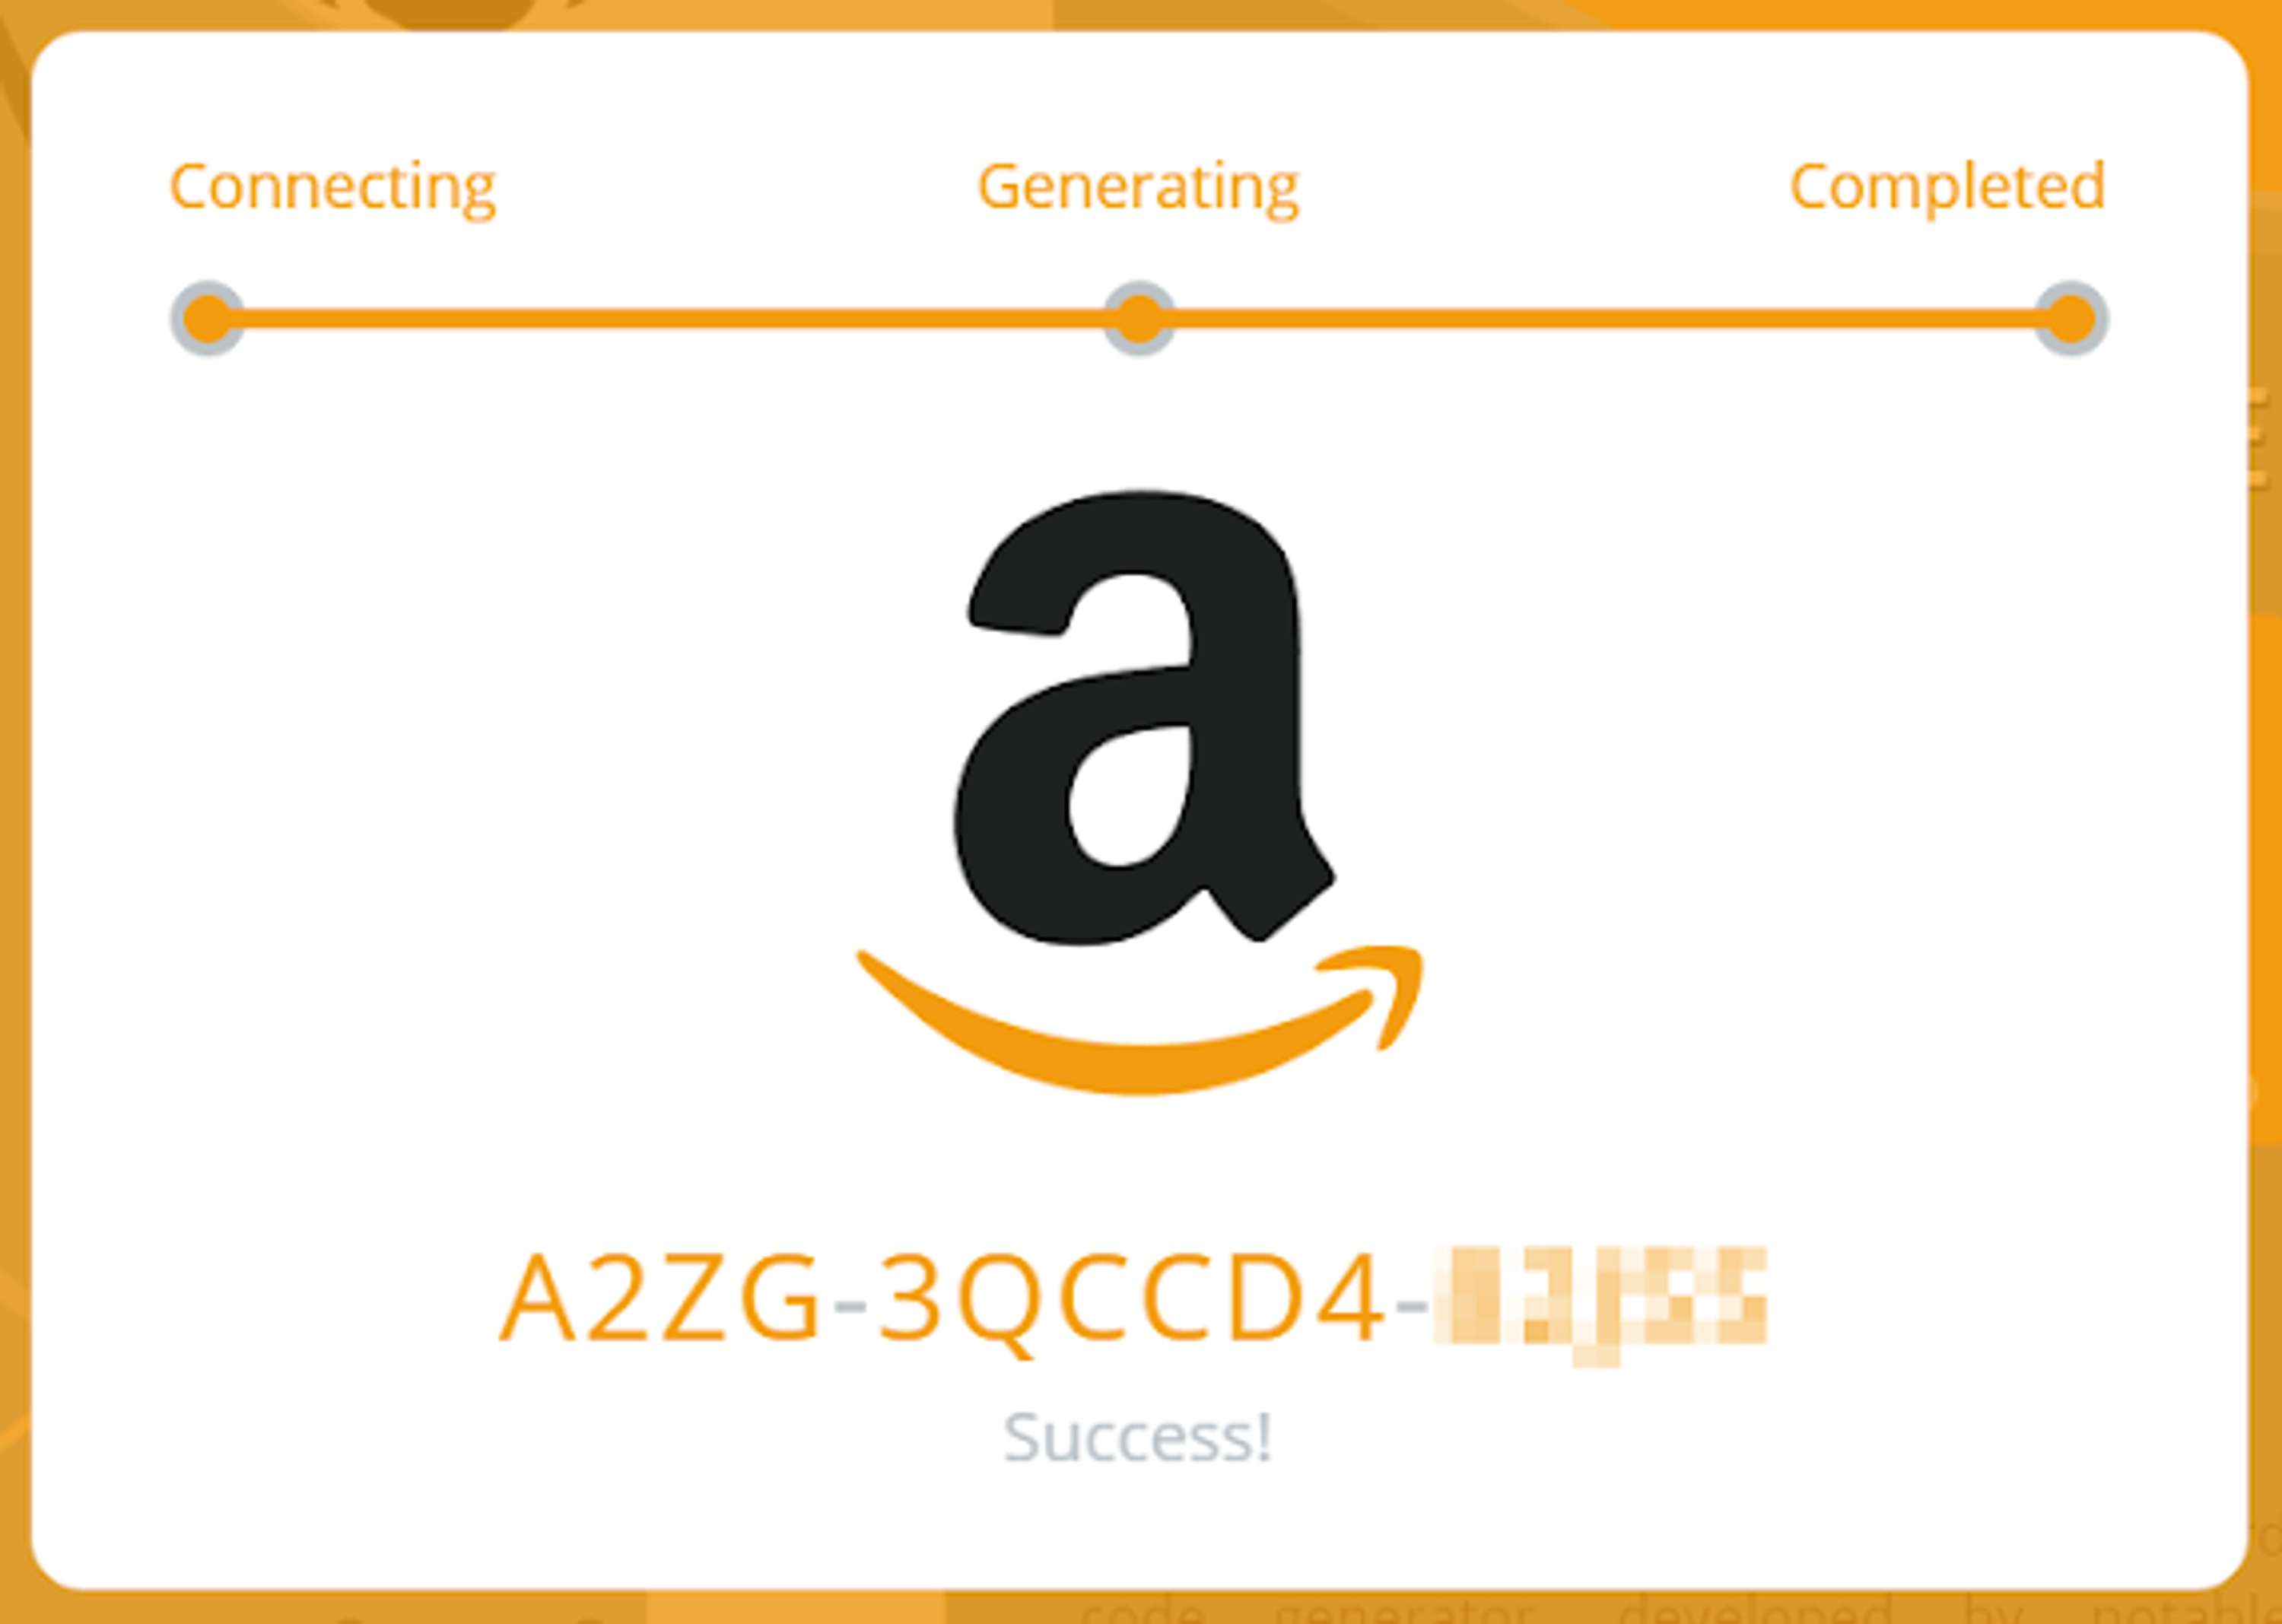 Free Amazon Gift Card Codes Generator 2019 | The Dots